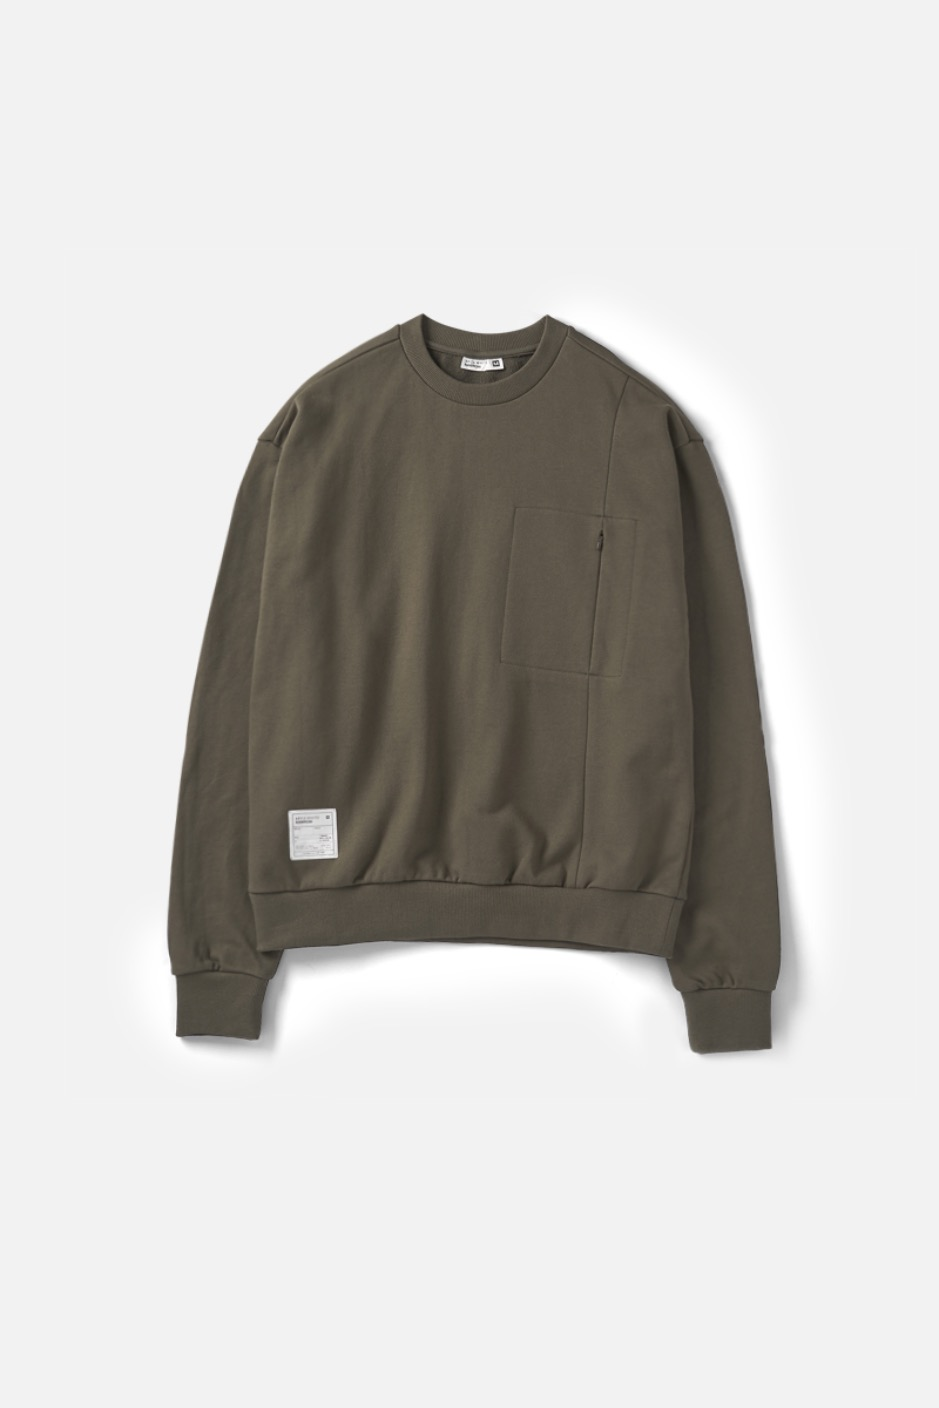 RAWROW X AECA WHITE SWEAT SHIRT-KHAKI